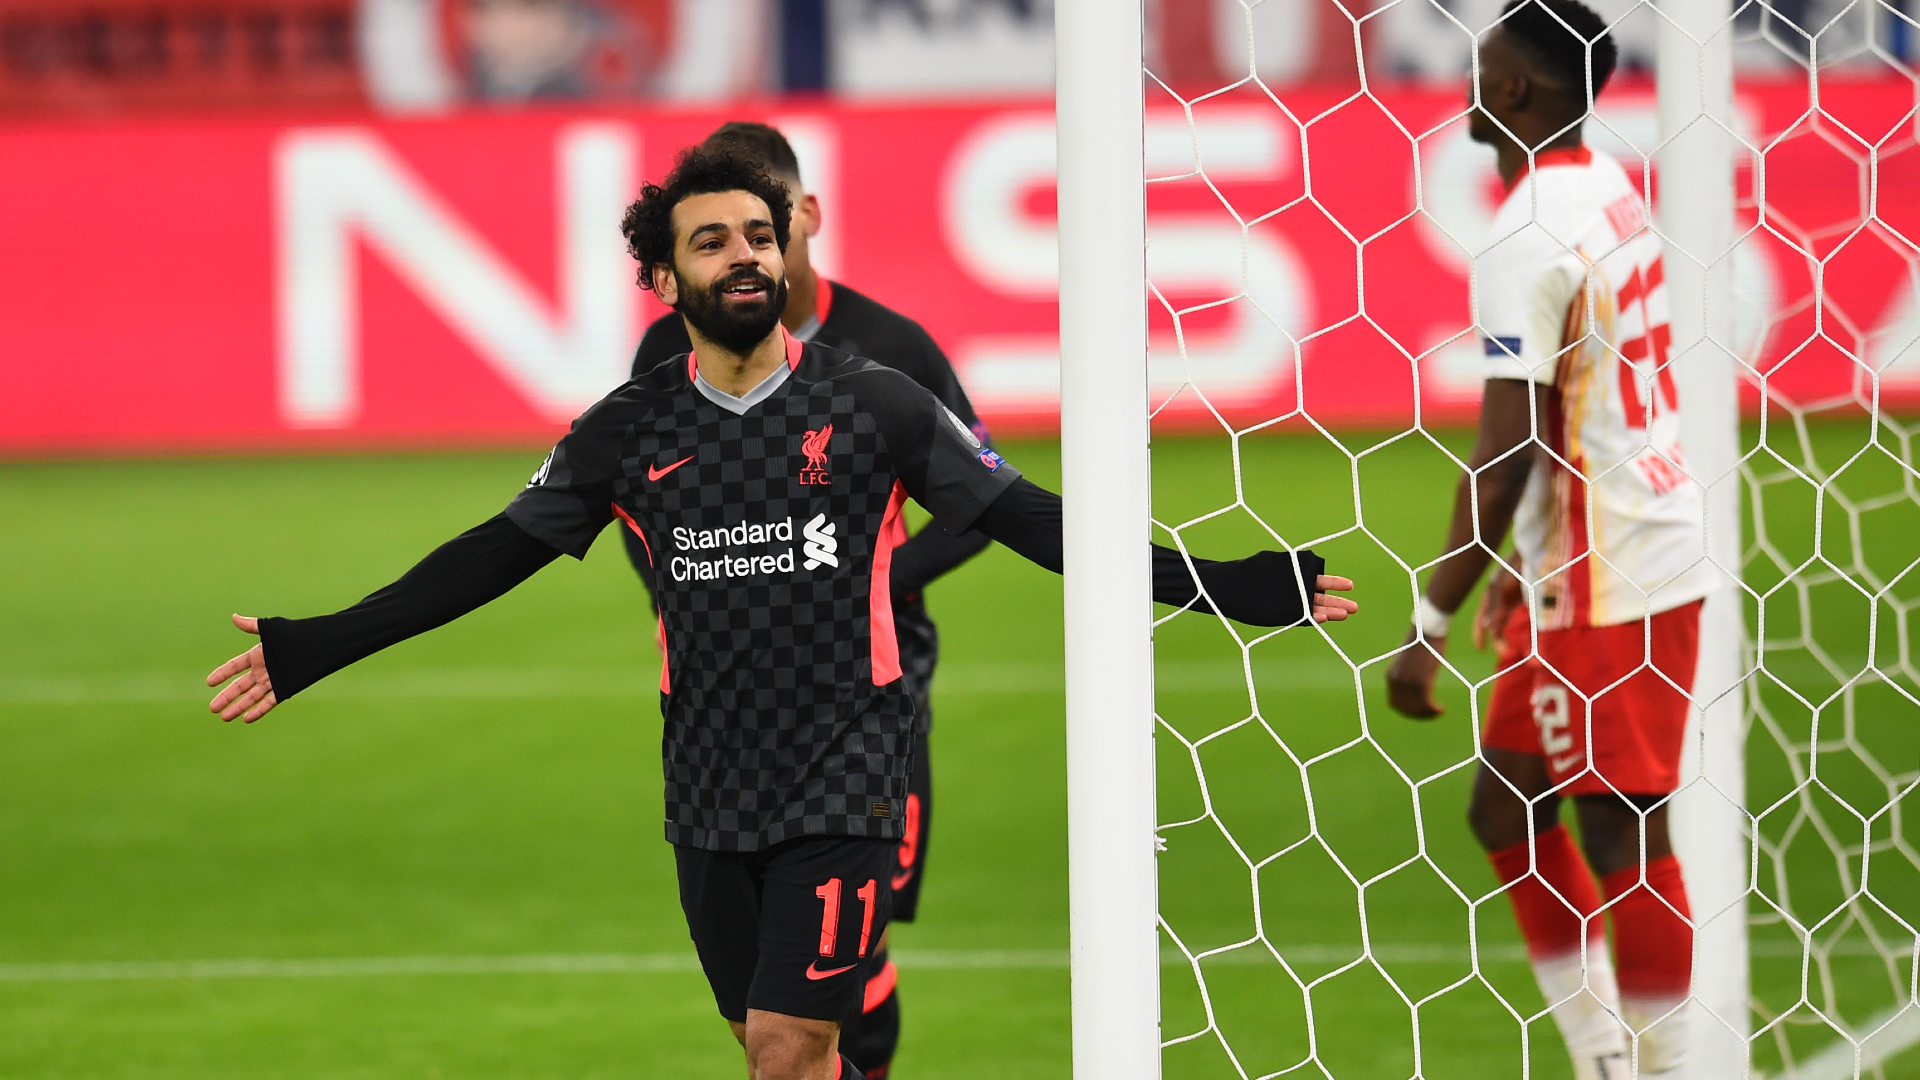 RB Leipzig 0-2 Liverpool: Salah and Mane pounce on errors to take charge of tie